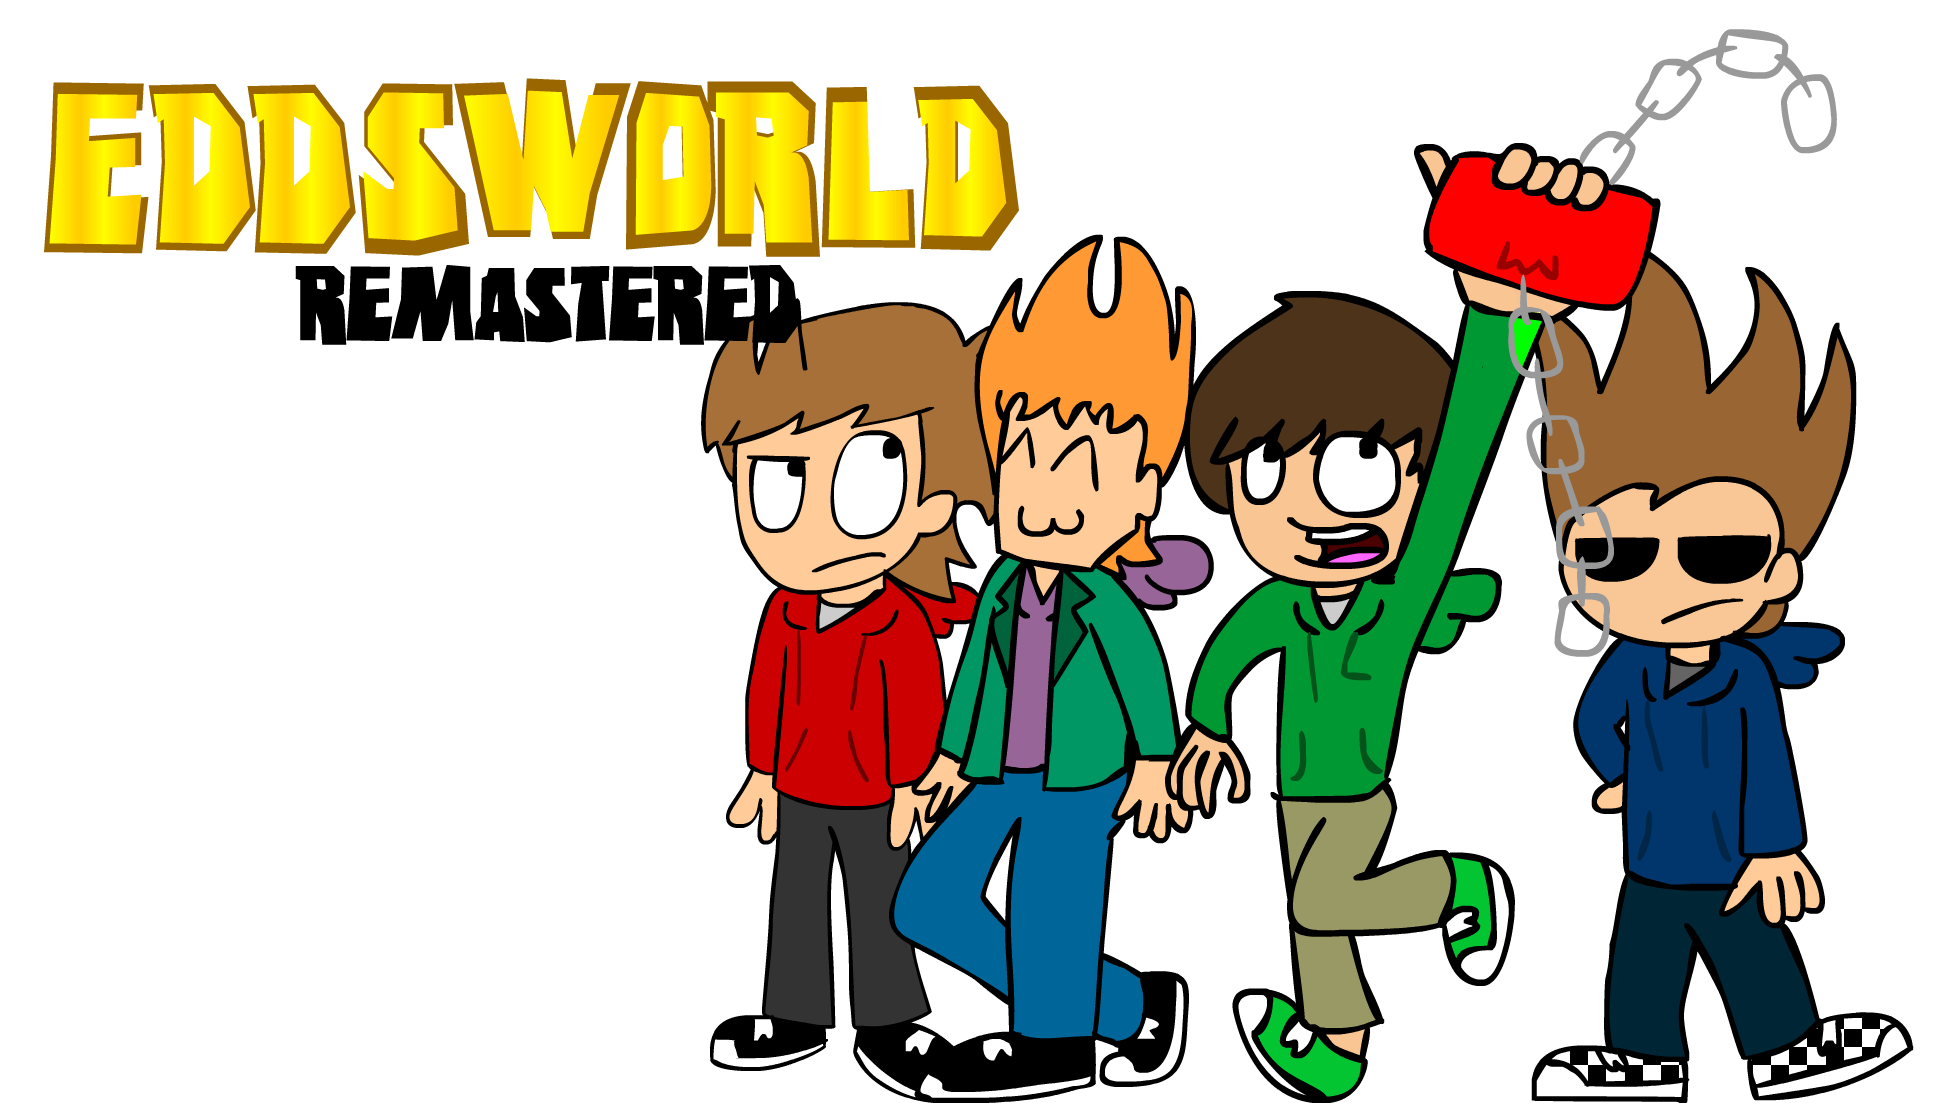 Eddsworld Remastered Designs